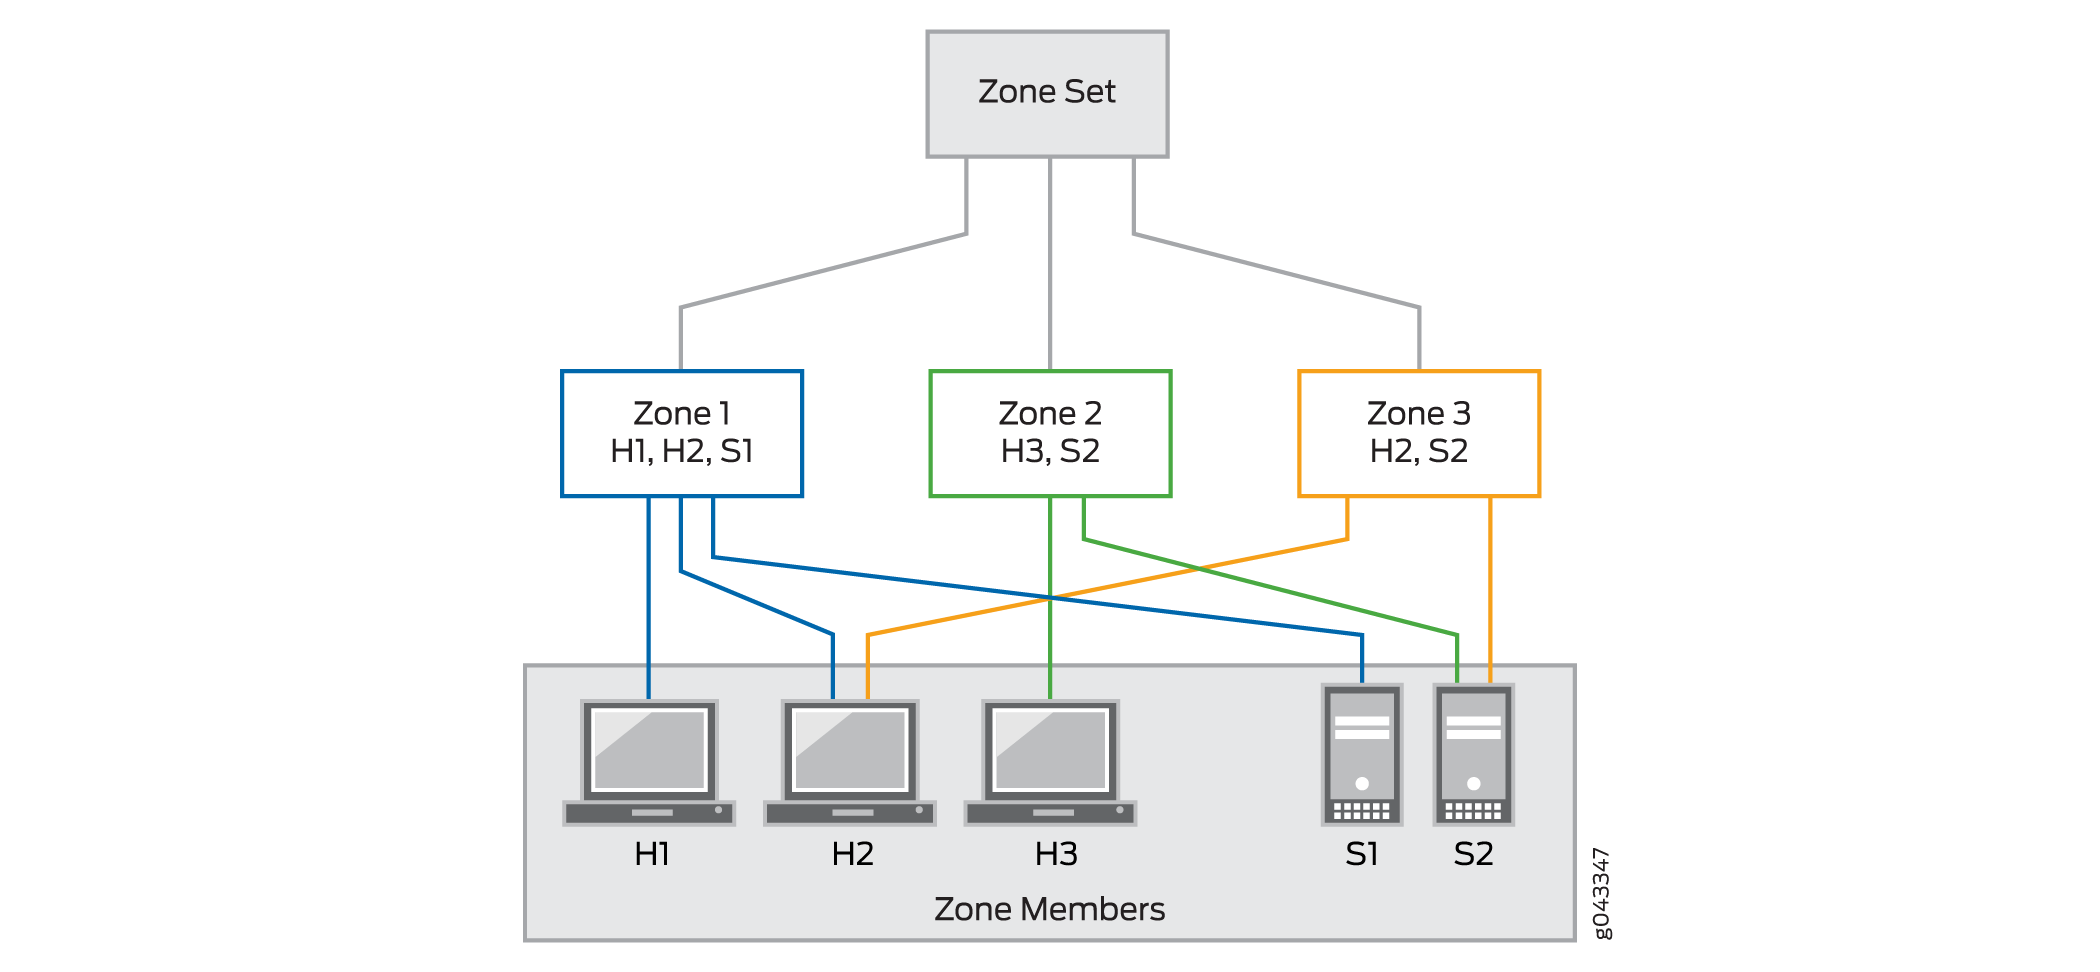 Hierarchy of Zone Set, Zones, and Zone Members